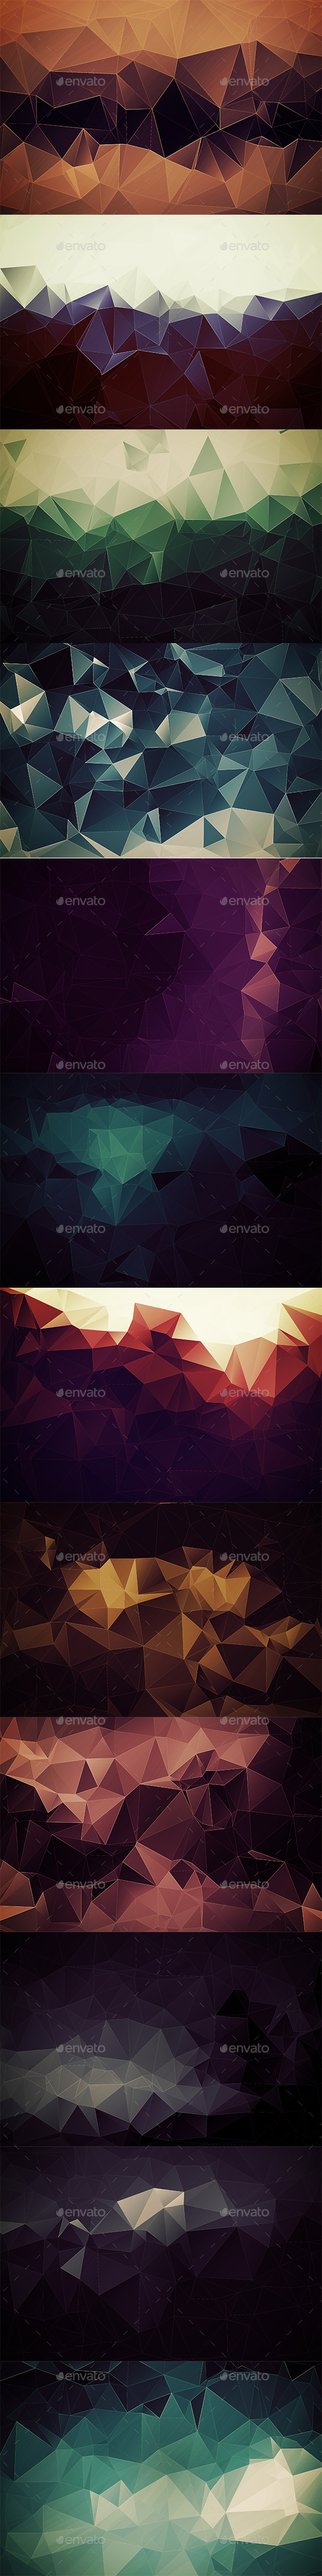 Abstract Polygonal Backgrounds Vol5 - Abstract Backgrounds